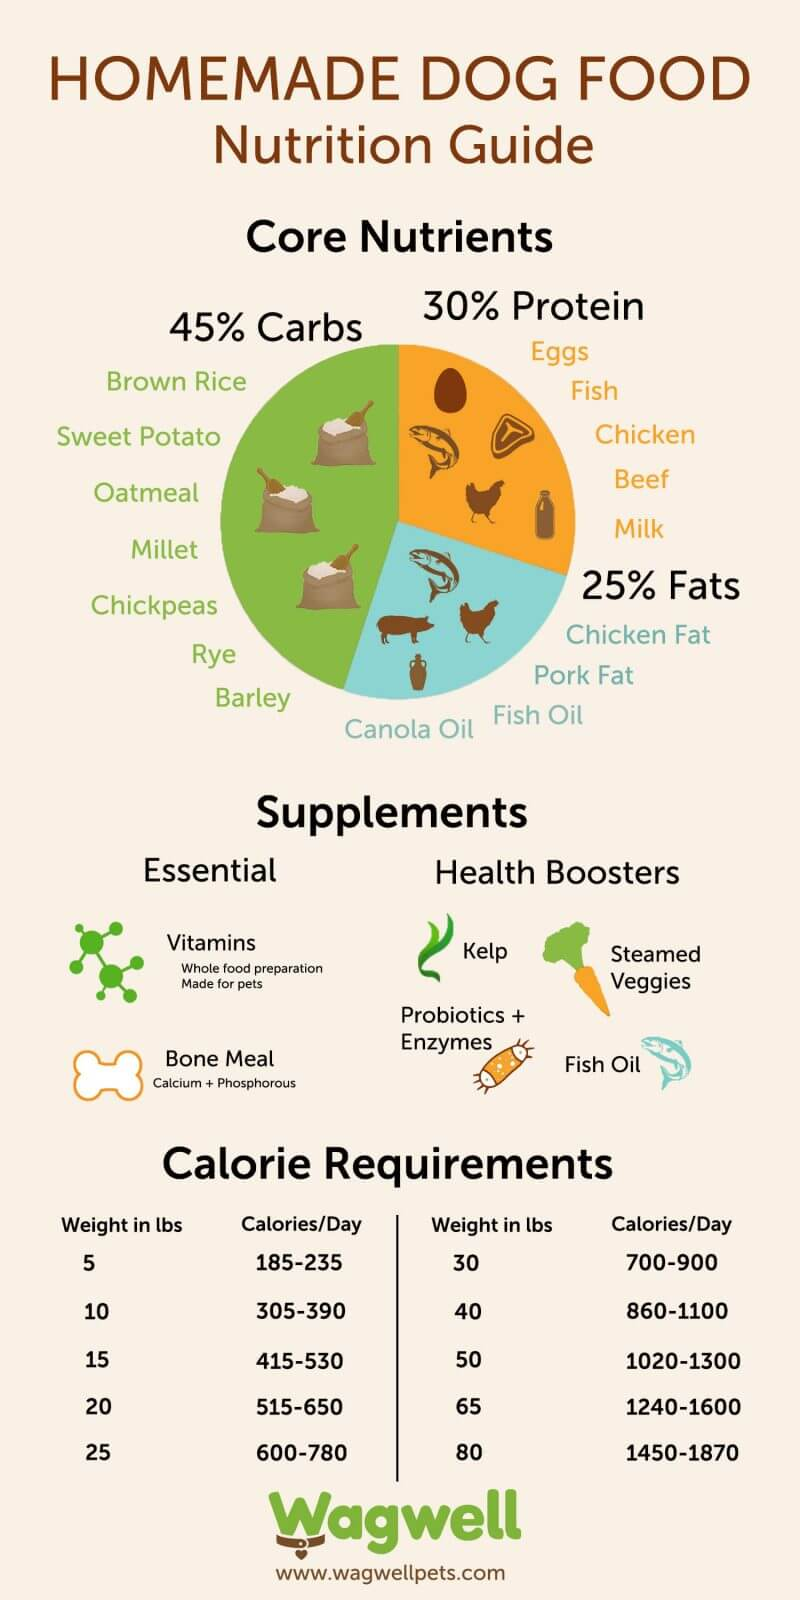 dog and puppy food nutrition guide (infographic)